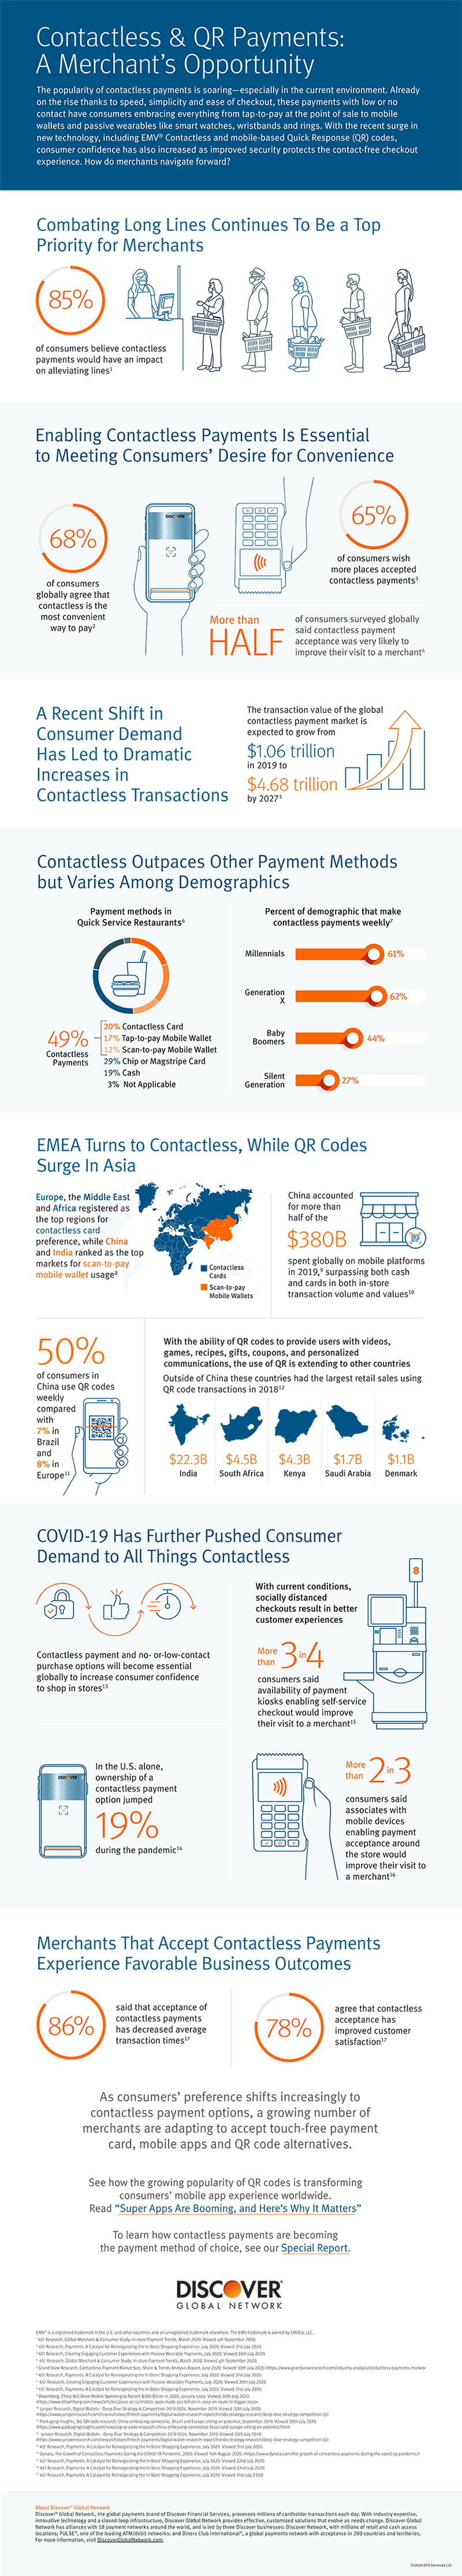 Contactless and QR Payments Opportunity Infographic